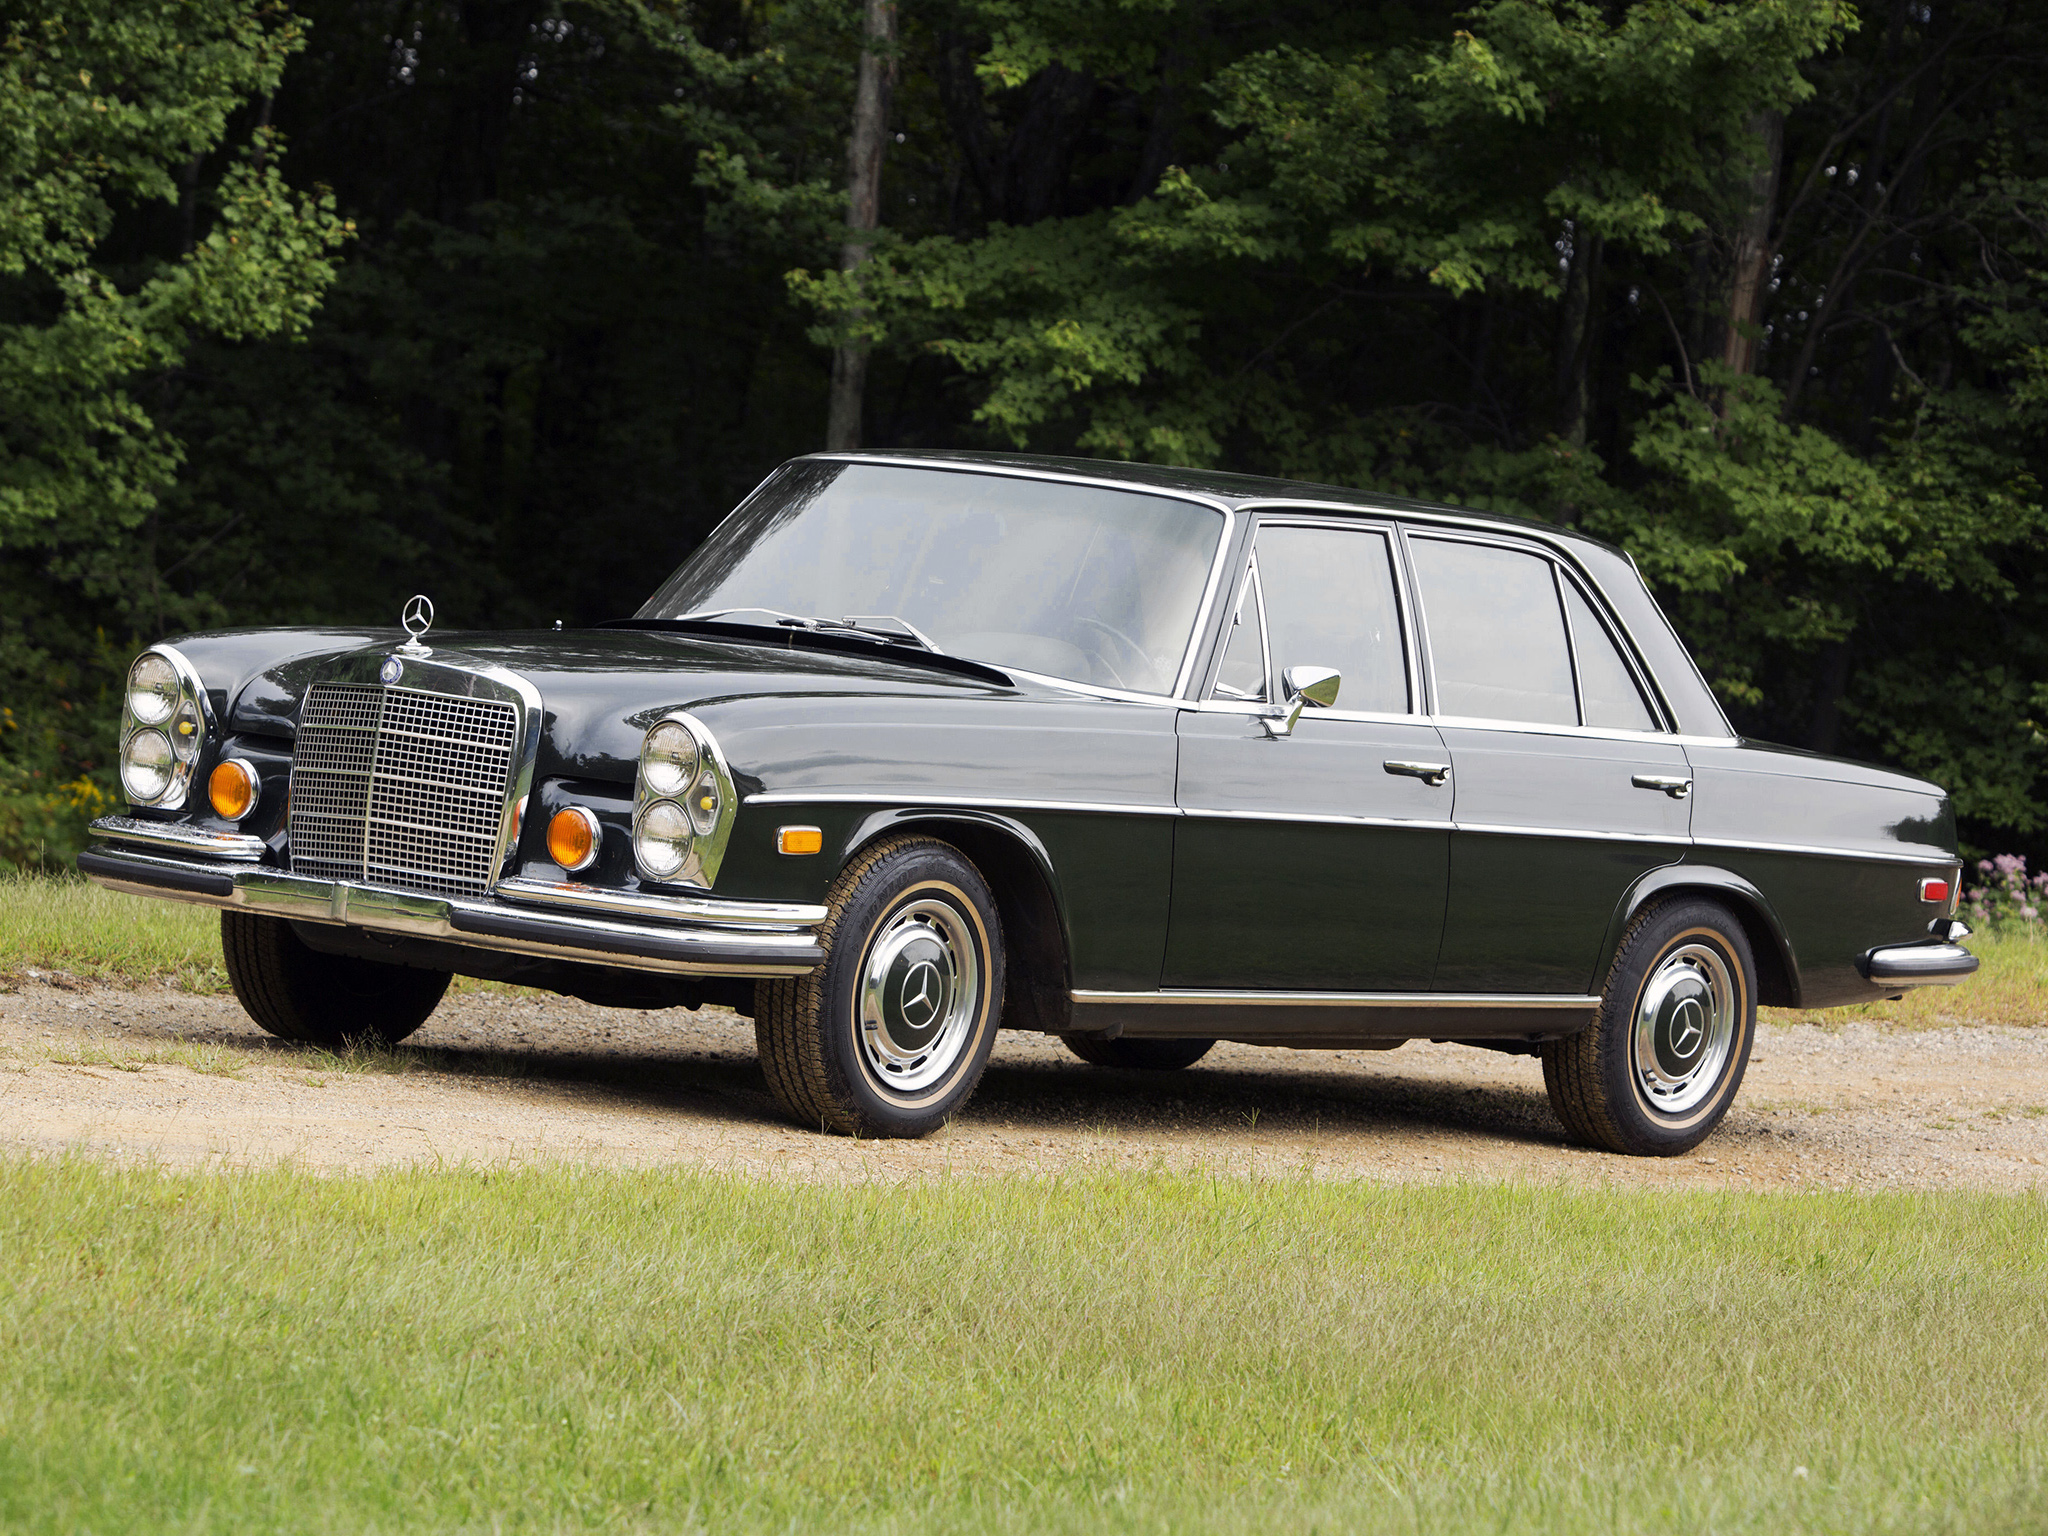 Mercedes Benz 280 Se W108 Vs Bmw 2800 E3 Test Drive Drive